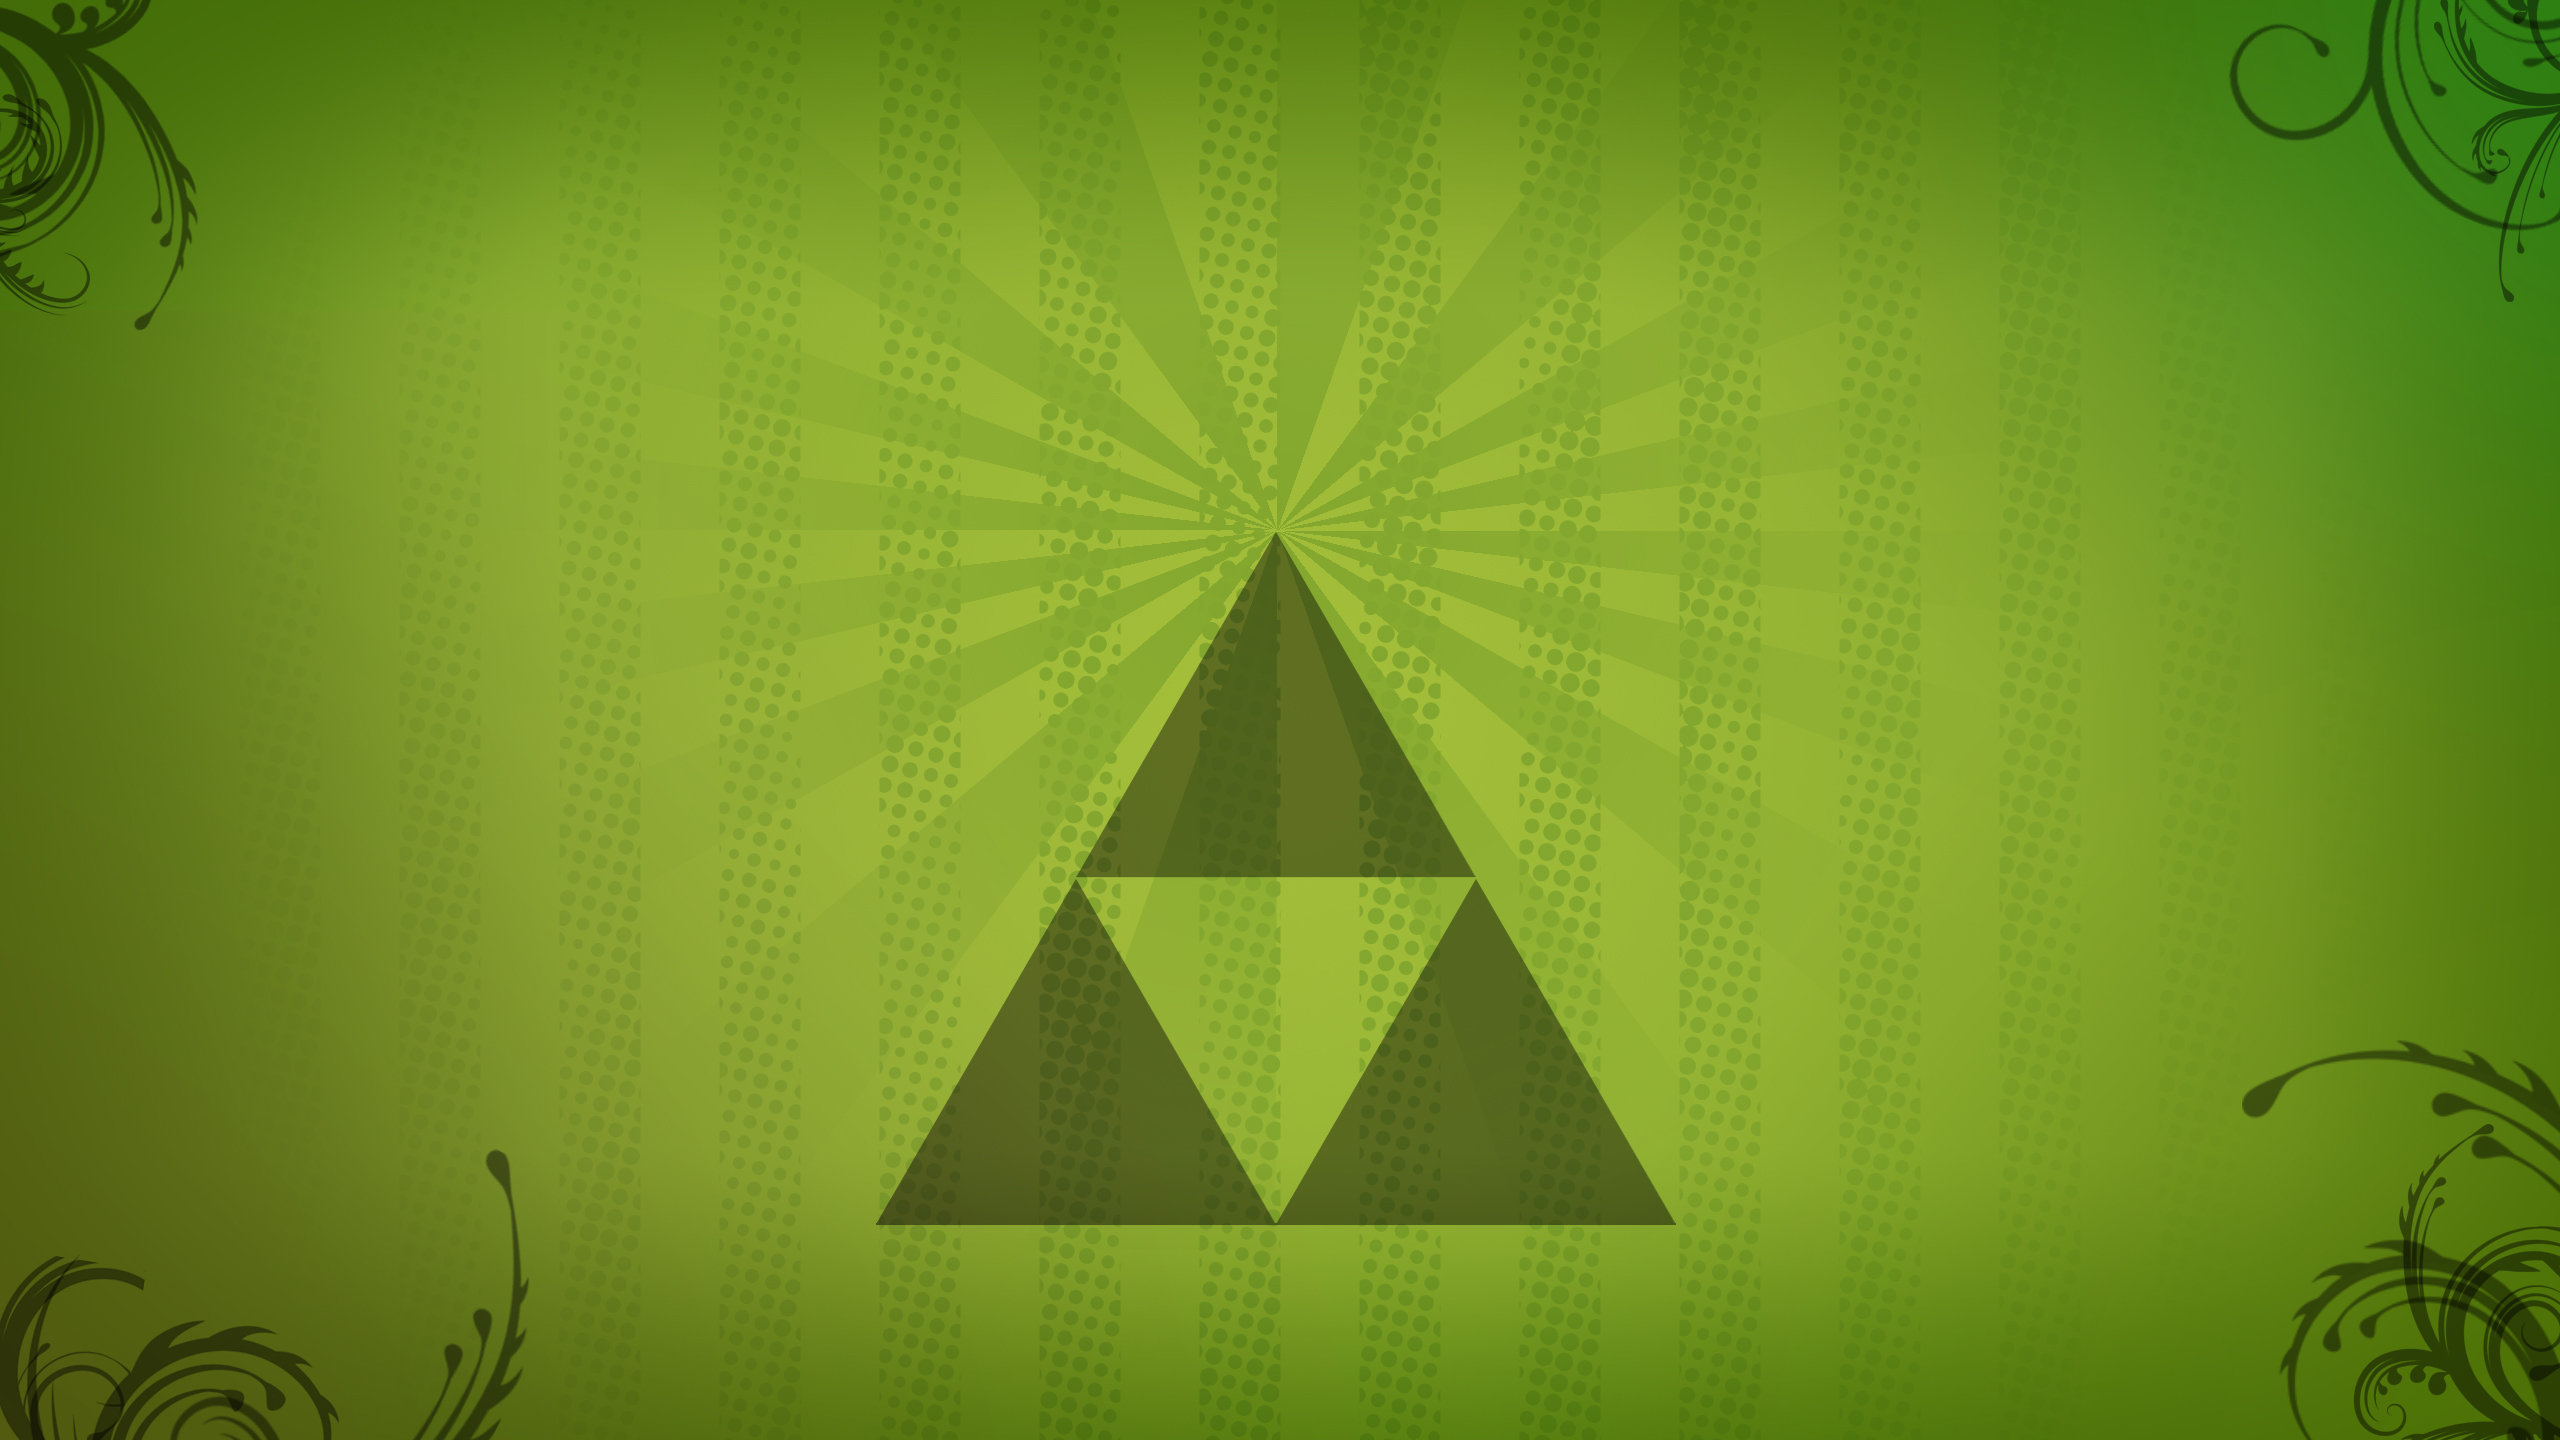 zelda minimalist wallpaper - photo #30